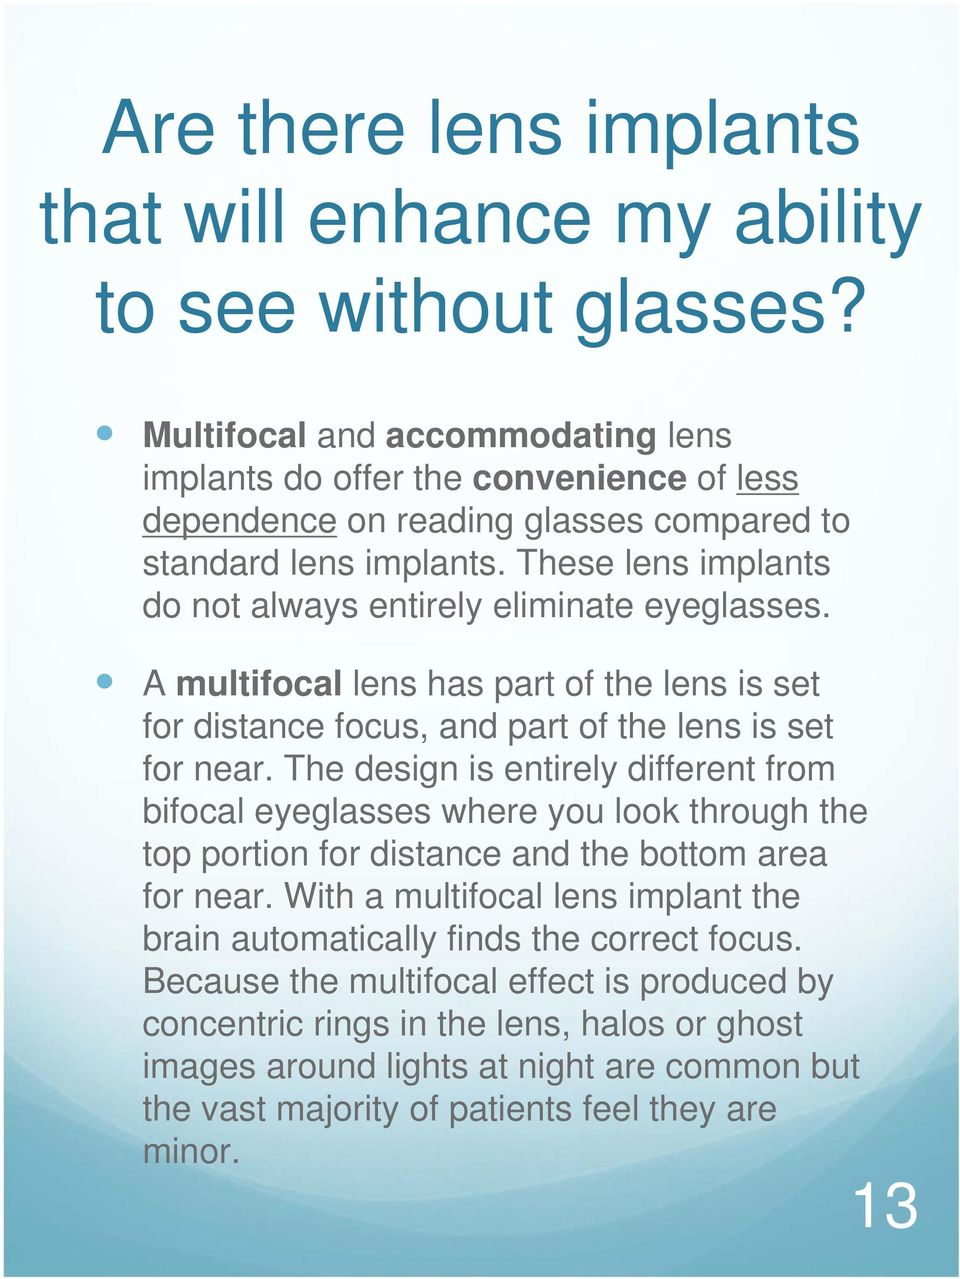 These lens implants do not always entirely eliminate eyeglasses. A multifocal lens has part of the lens is set for distance focus, and part of the lens is set for near.